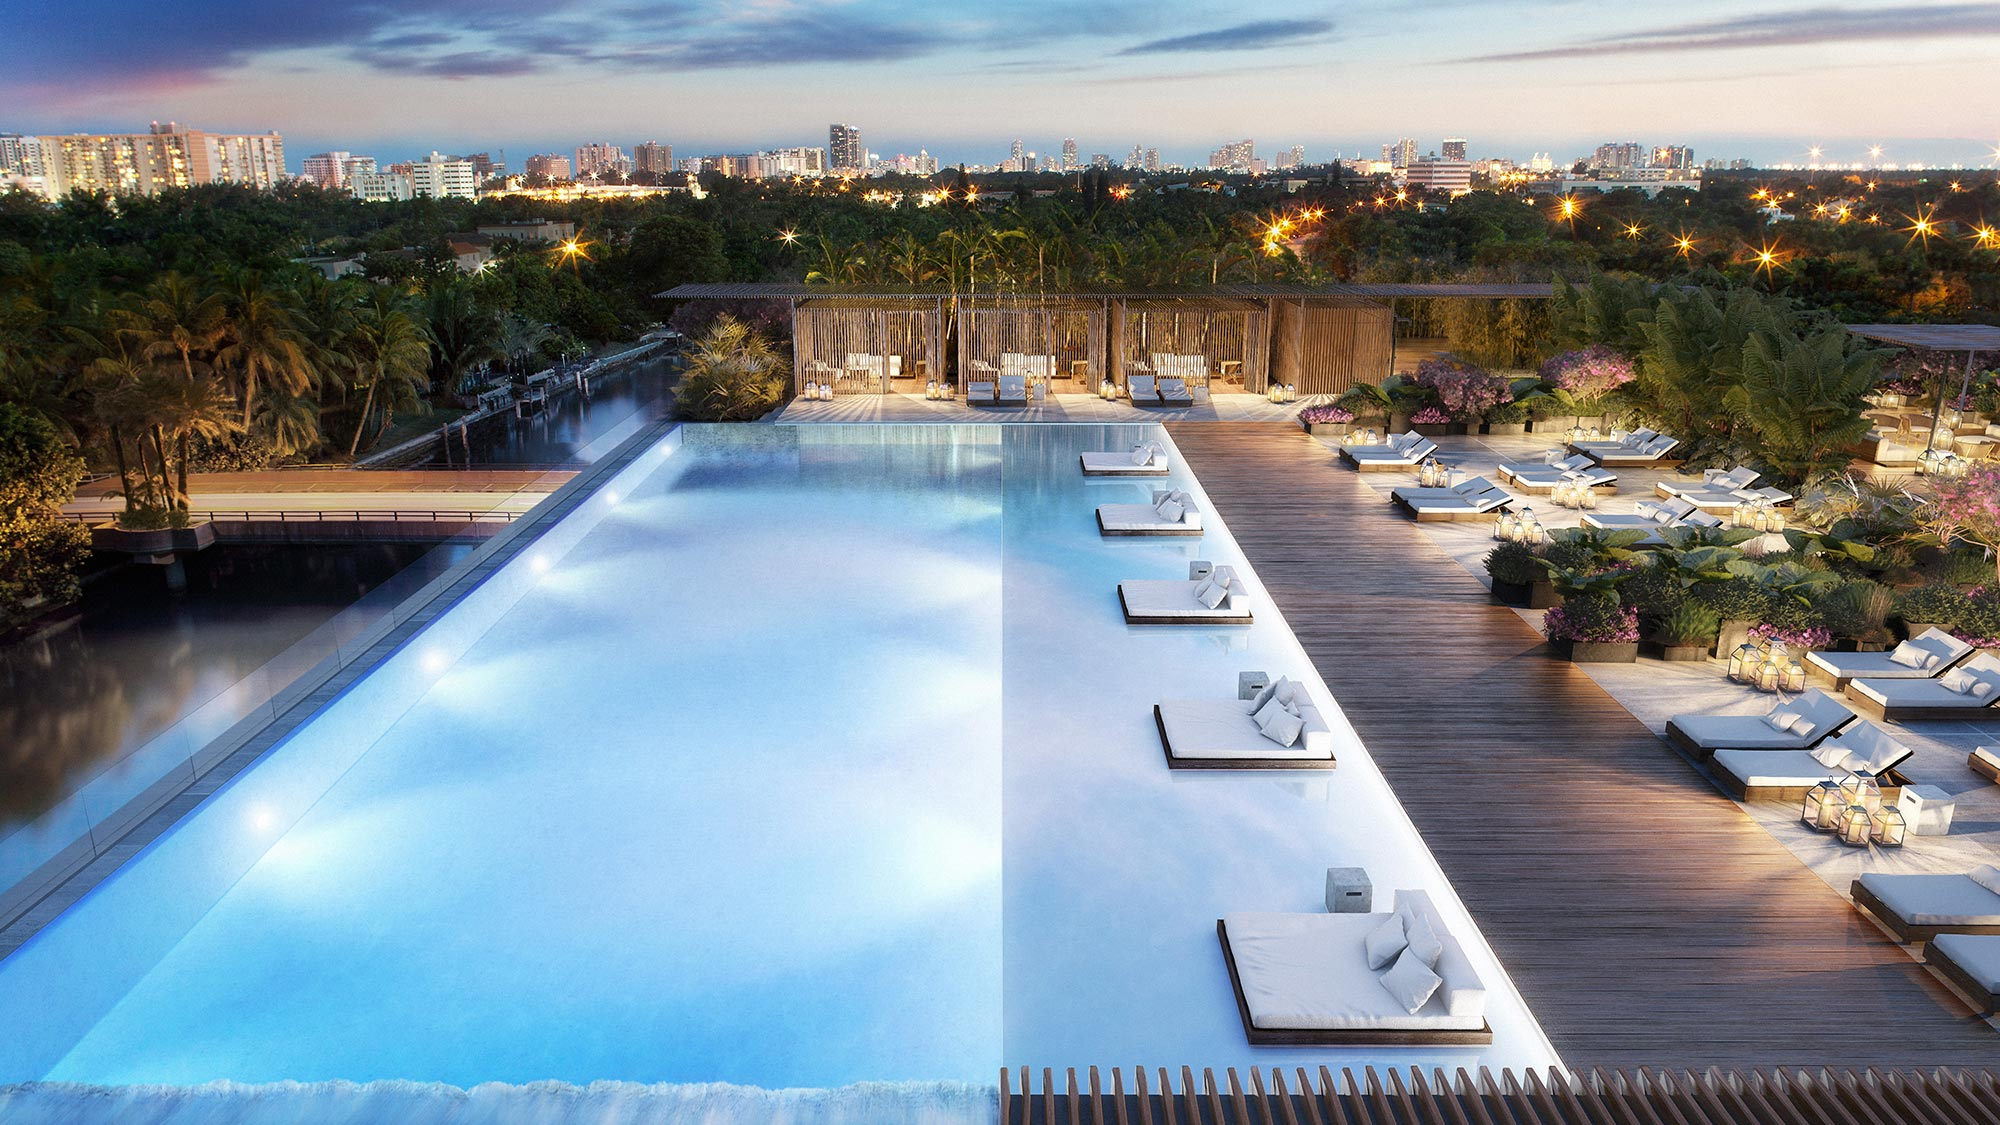 Condos-in-Miami-Beach-Pool